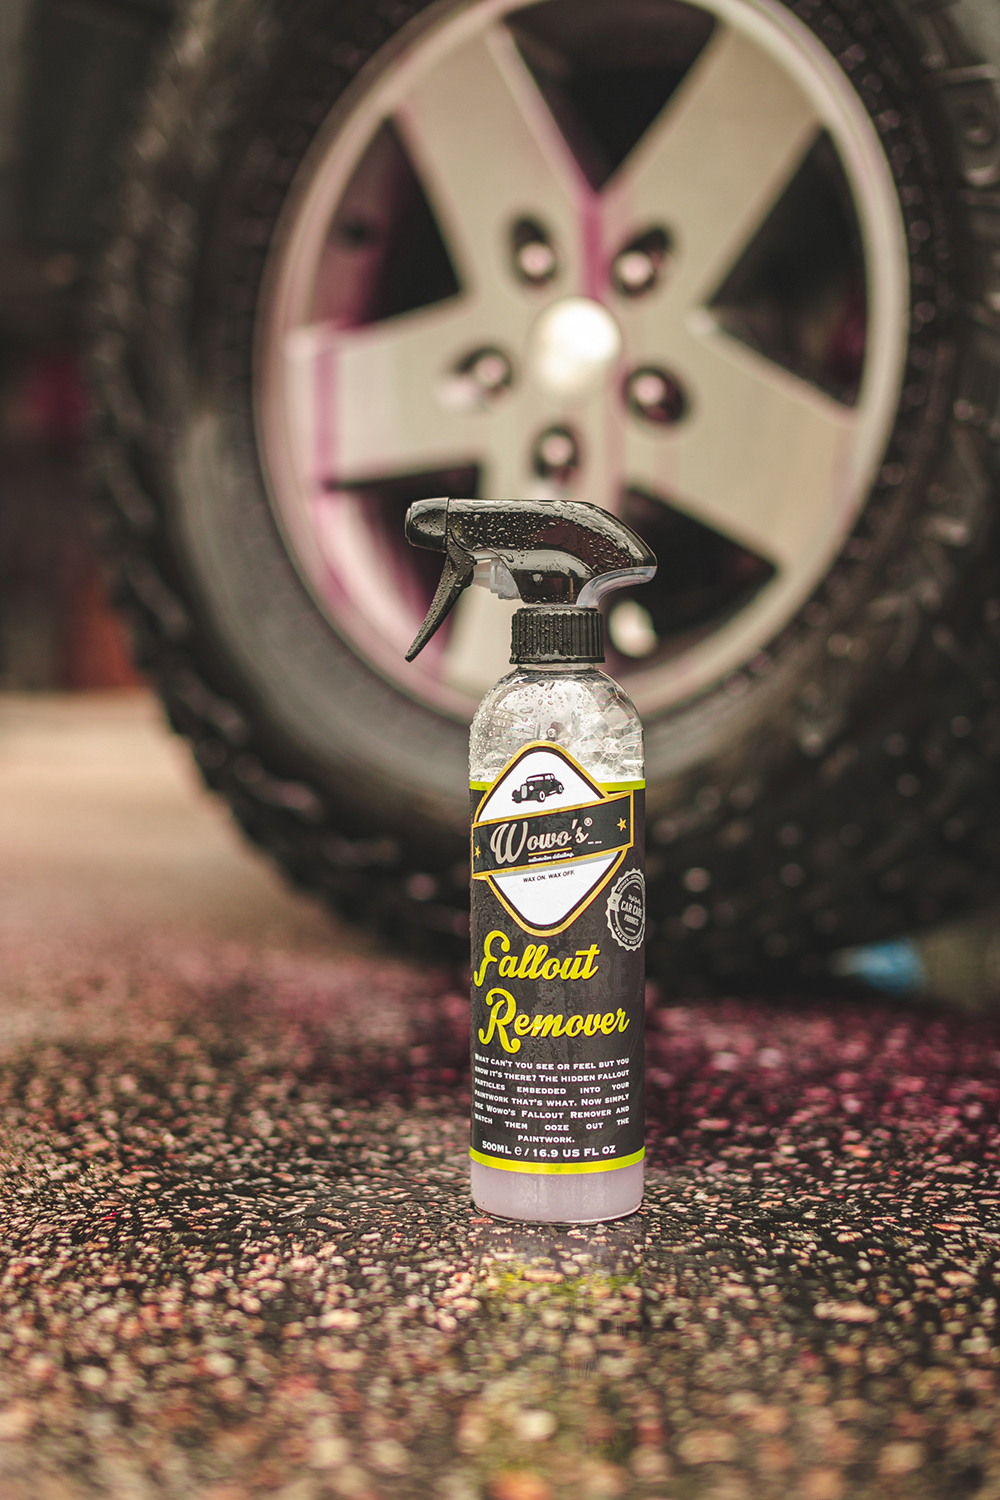 https://www.wowos.co.uk/wp-content/uploads/2019/12/wowos-500ml-fallout-remover-jeep-demo-2.jpg